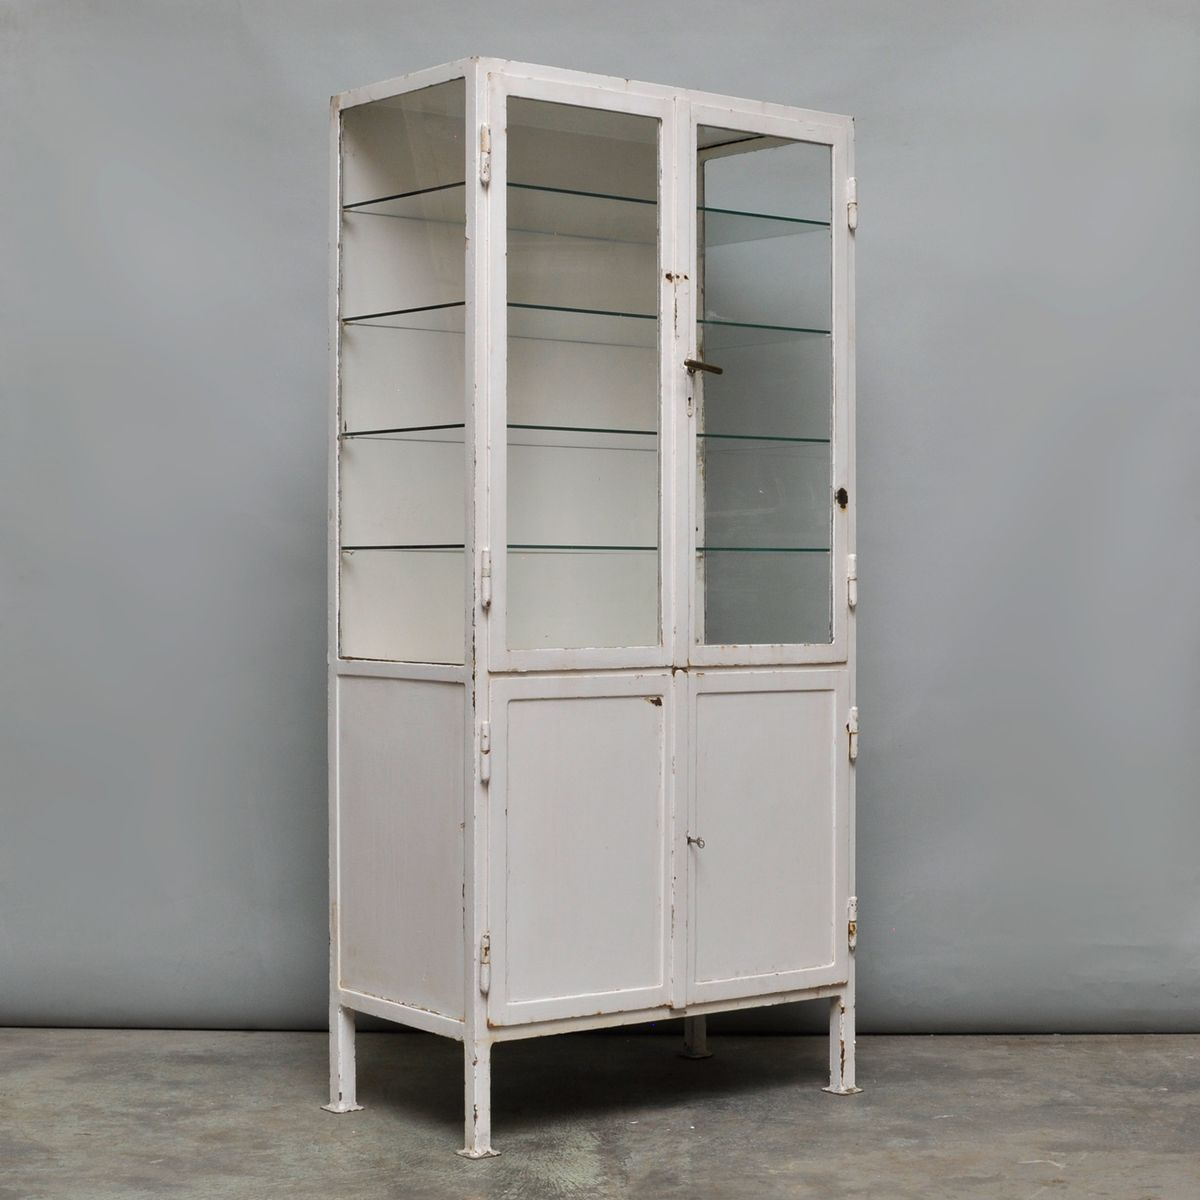 Steel Cabinet For Sale Vintage Industrial Steel And Glass Cabinet 1930s For Sale